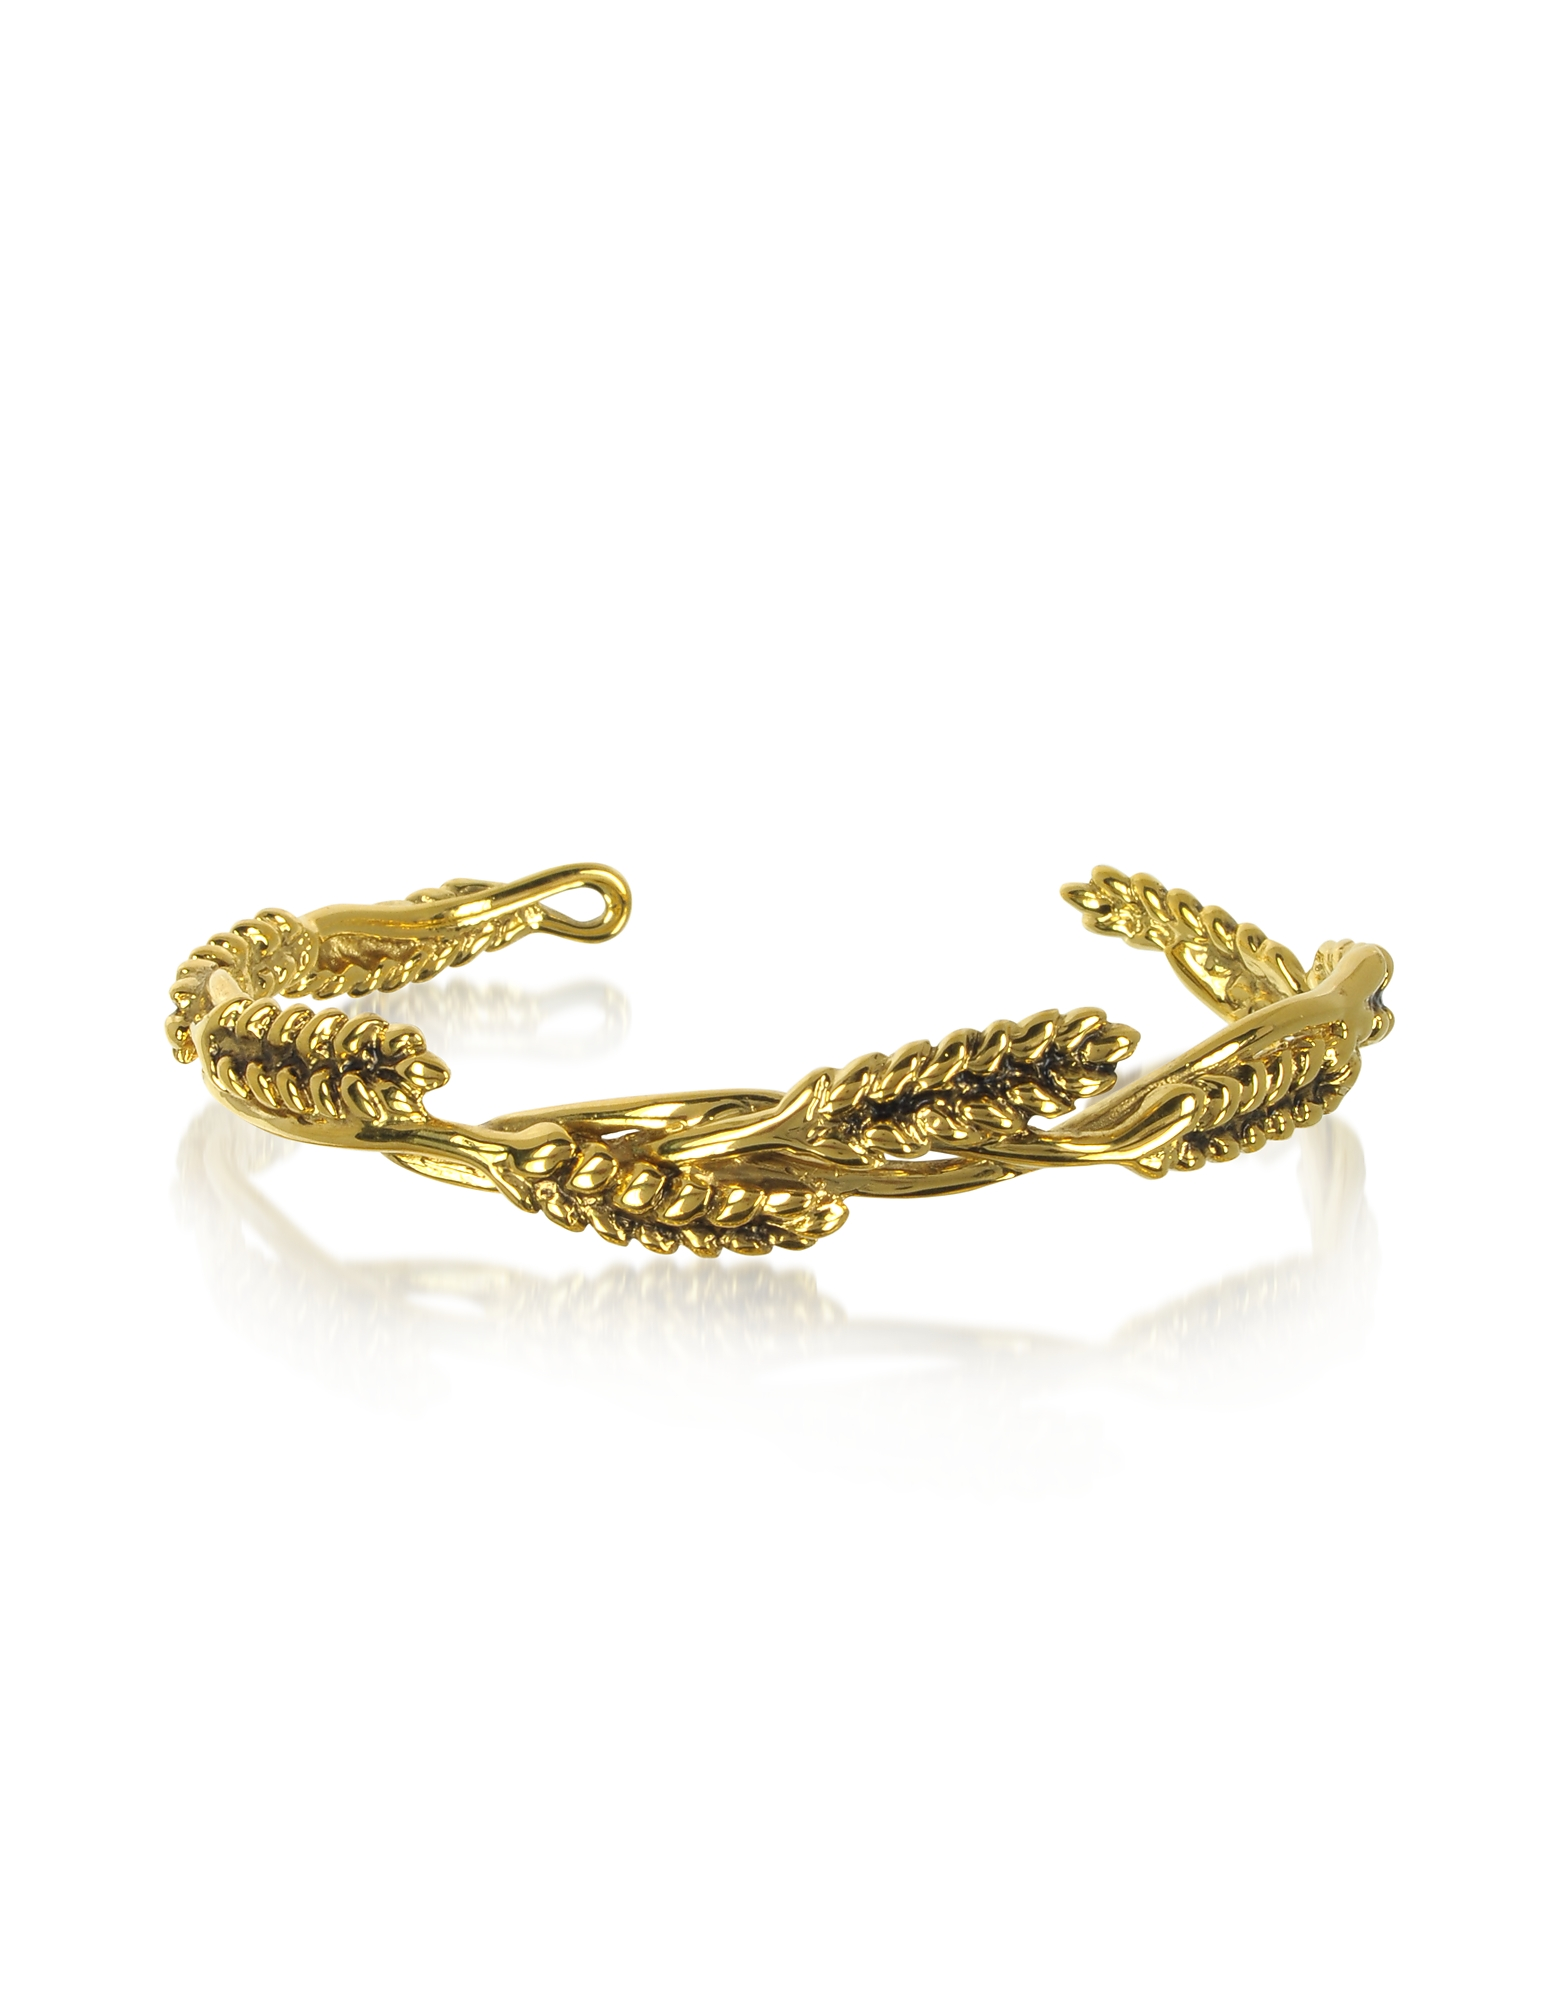 Aurelie Bidermann Bracelets, Wheat 18K Gold-Plated Bangle